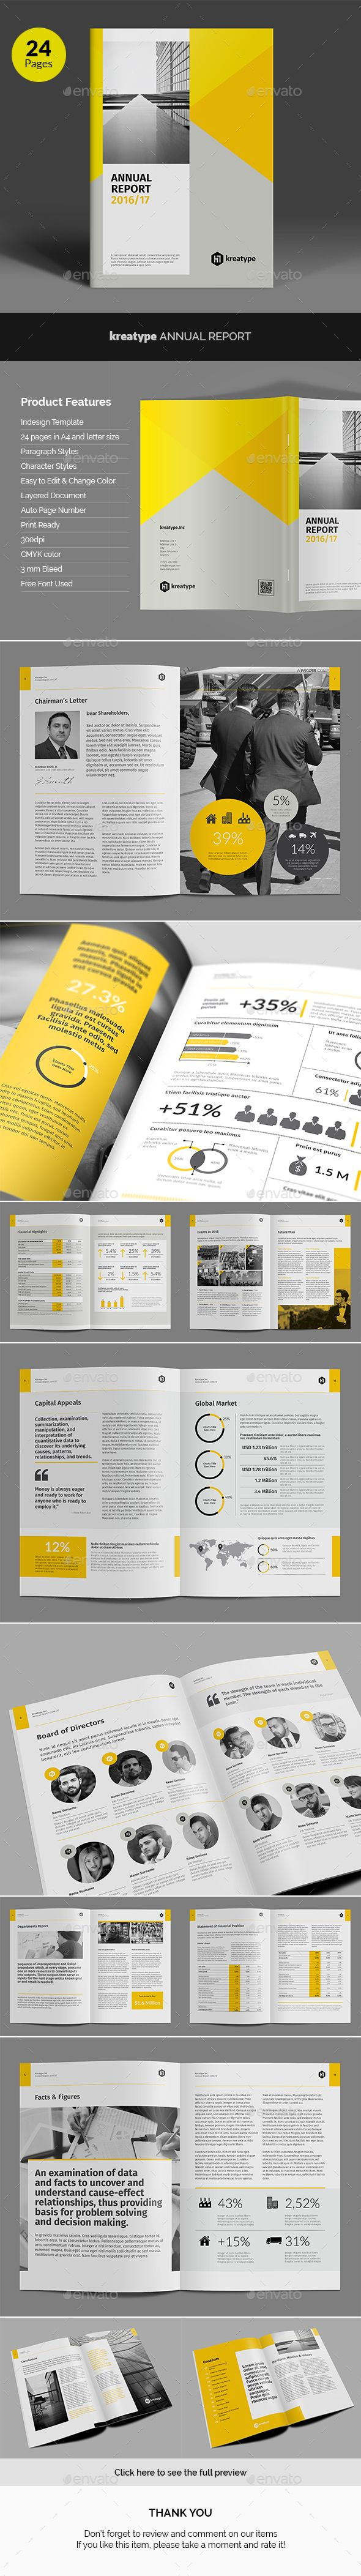 Best 25 Annual report design ideas on Pinterest Report design